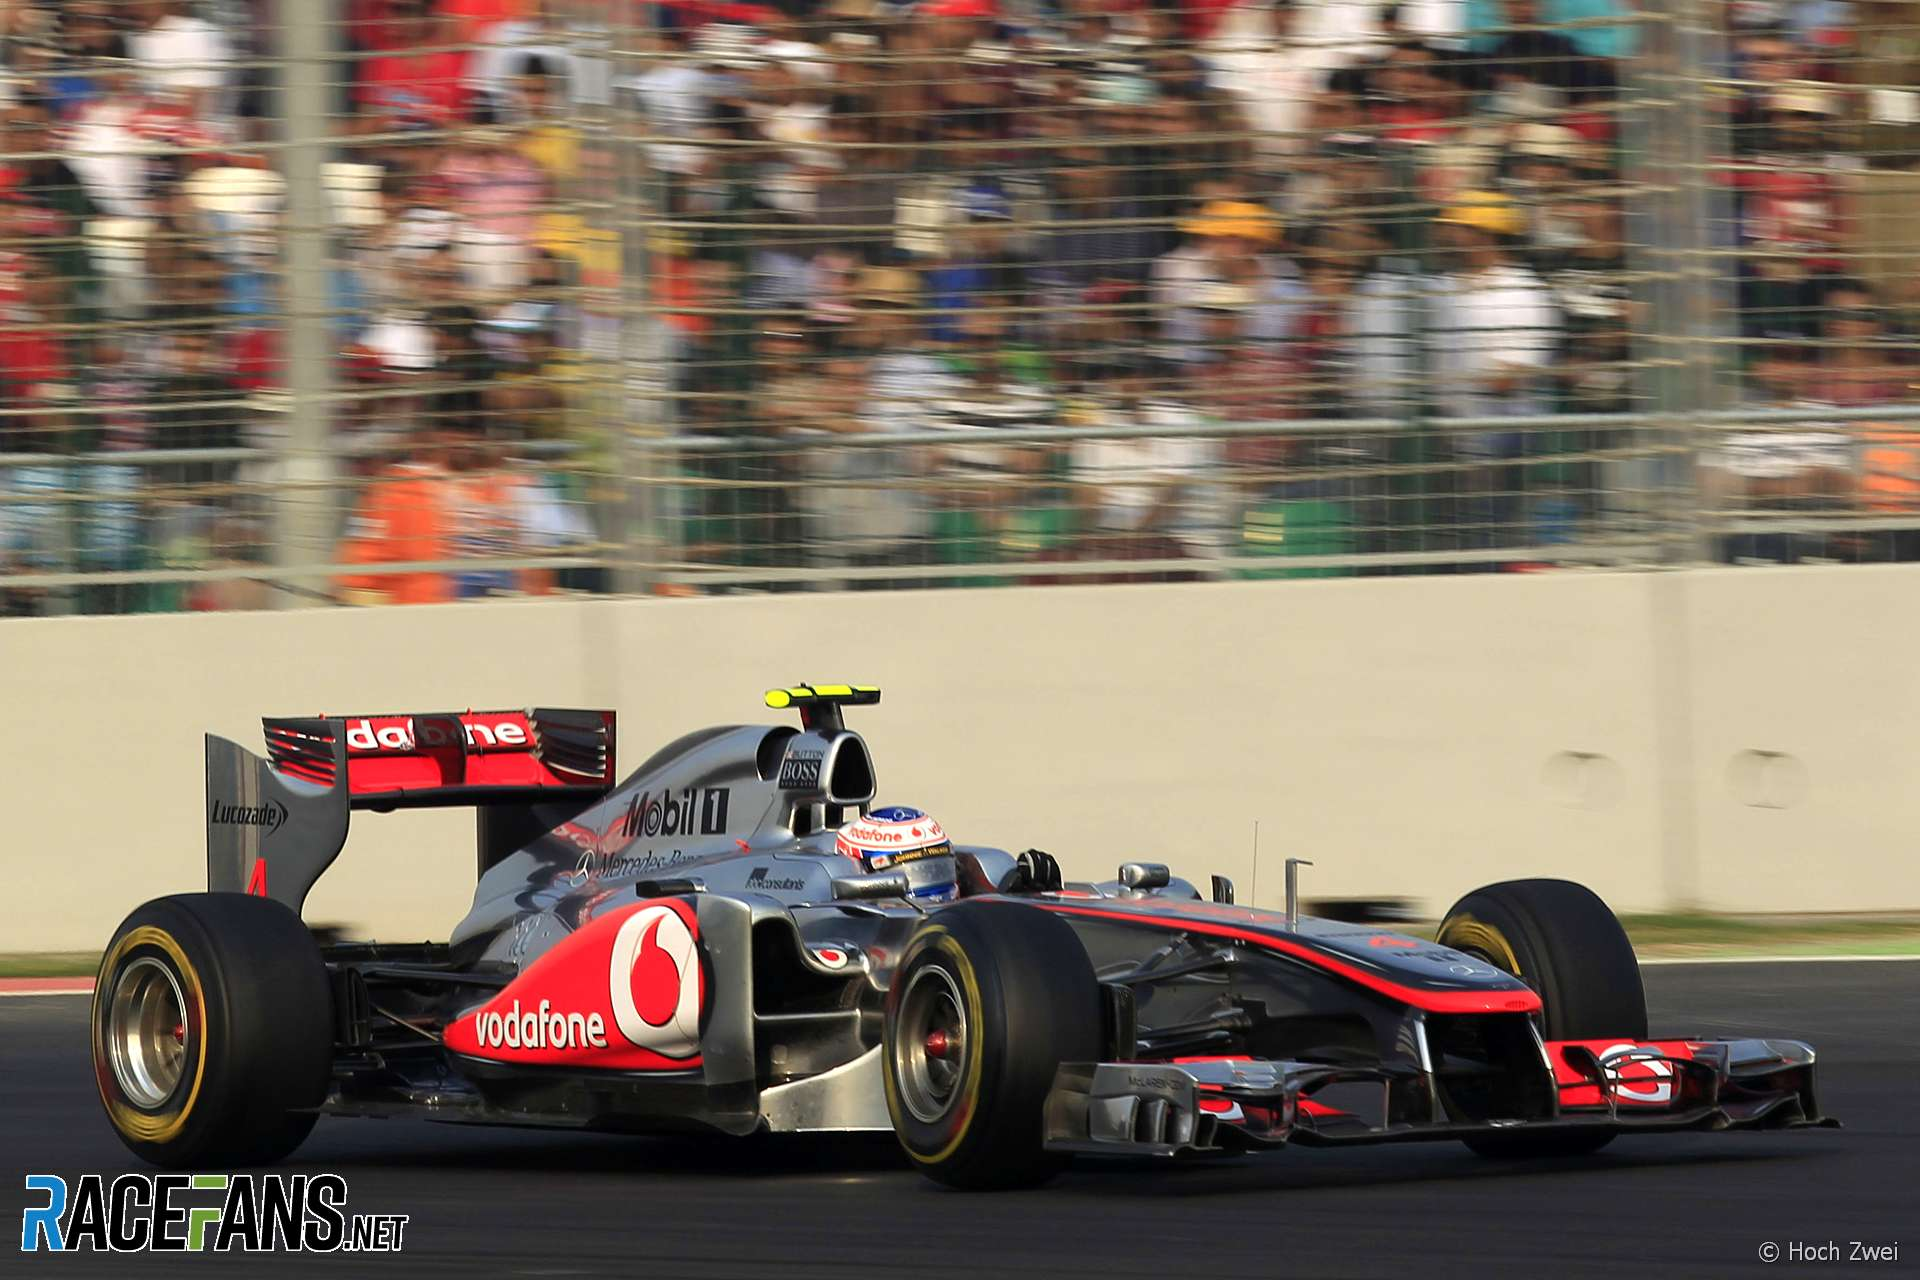 Jenson Button, McLaren, Buddh International Circuit, 2011